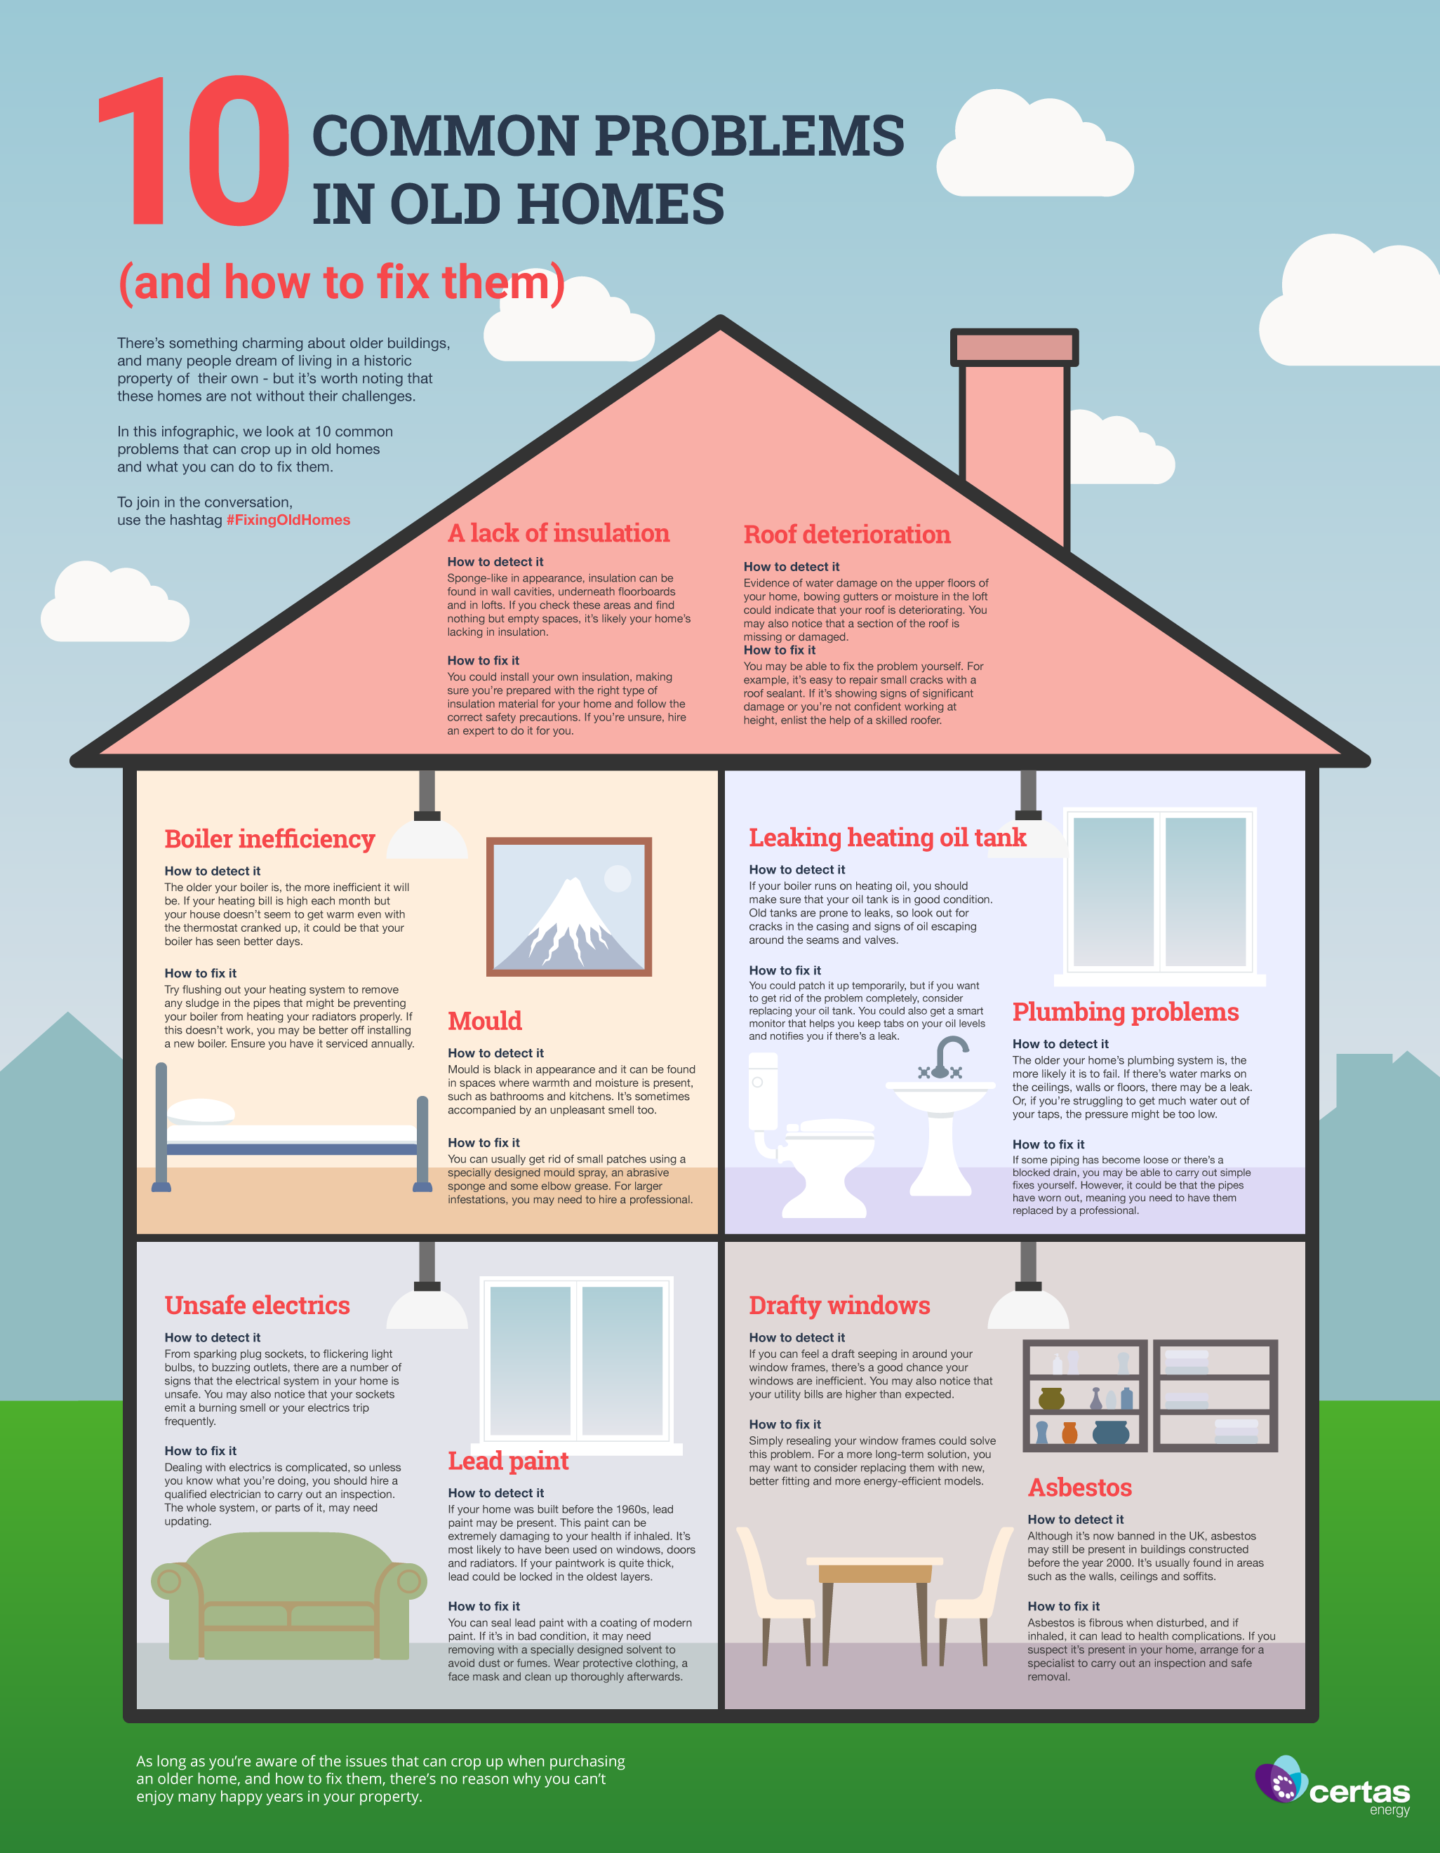 10 common problems ion old homes infographic